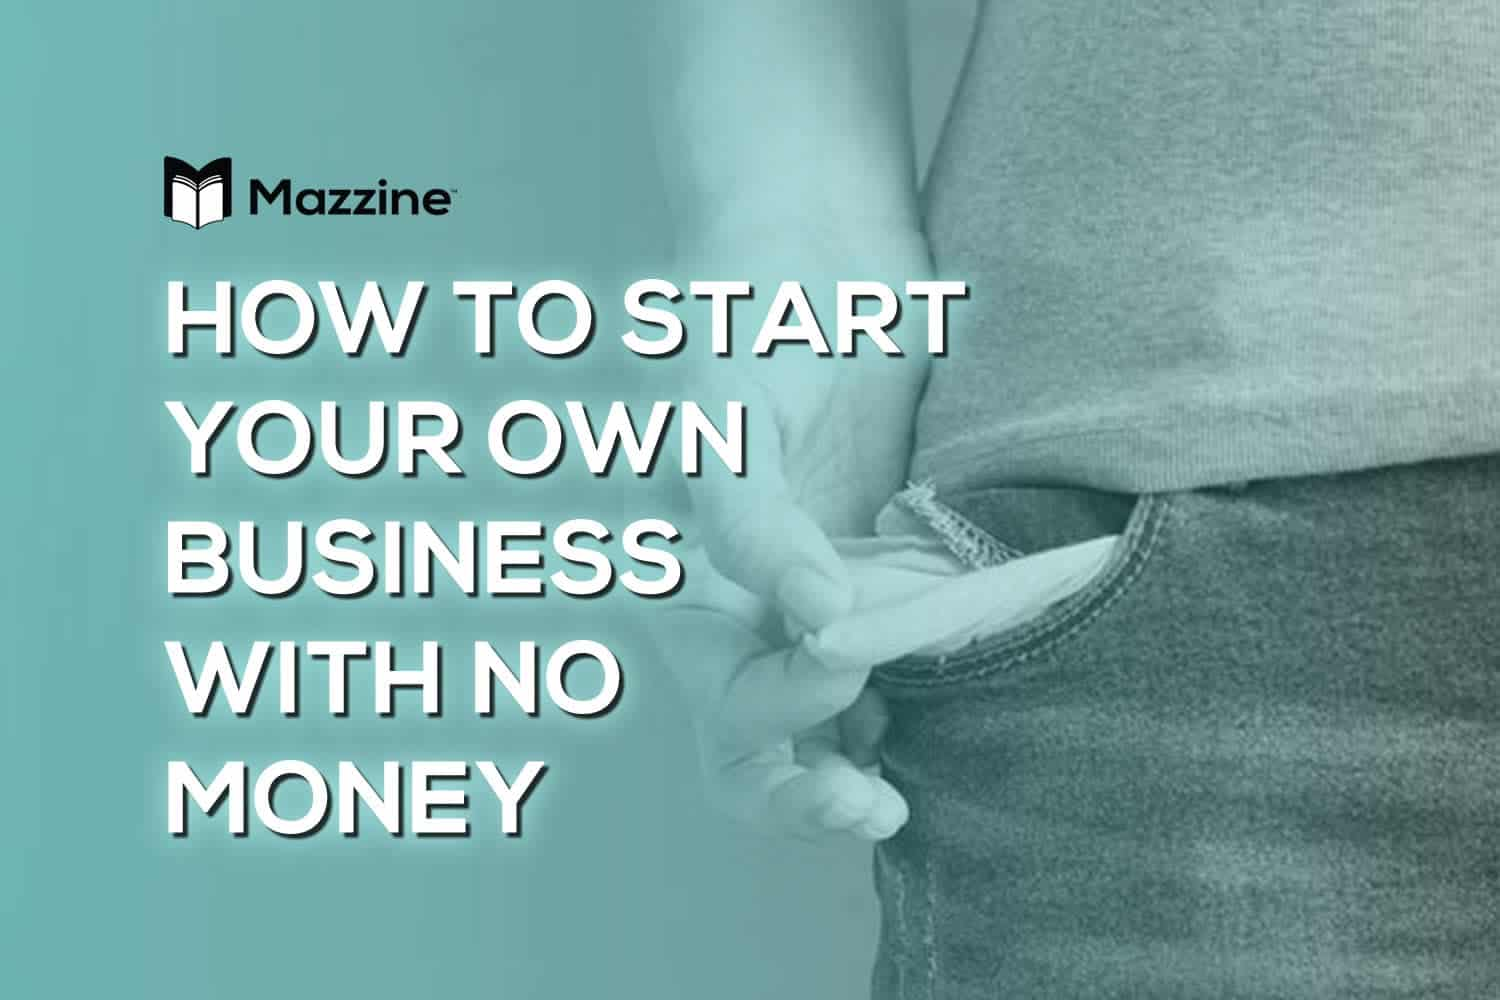 How to Start Your Own Business With No Money